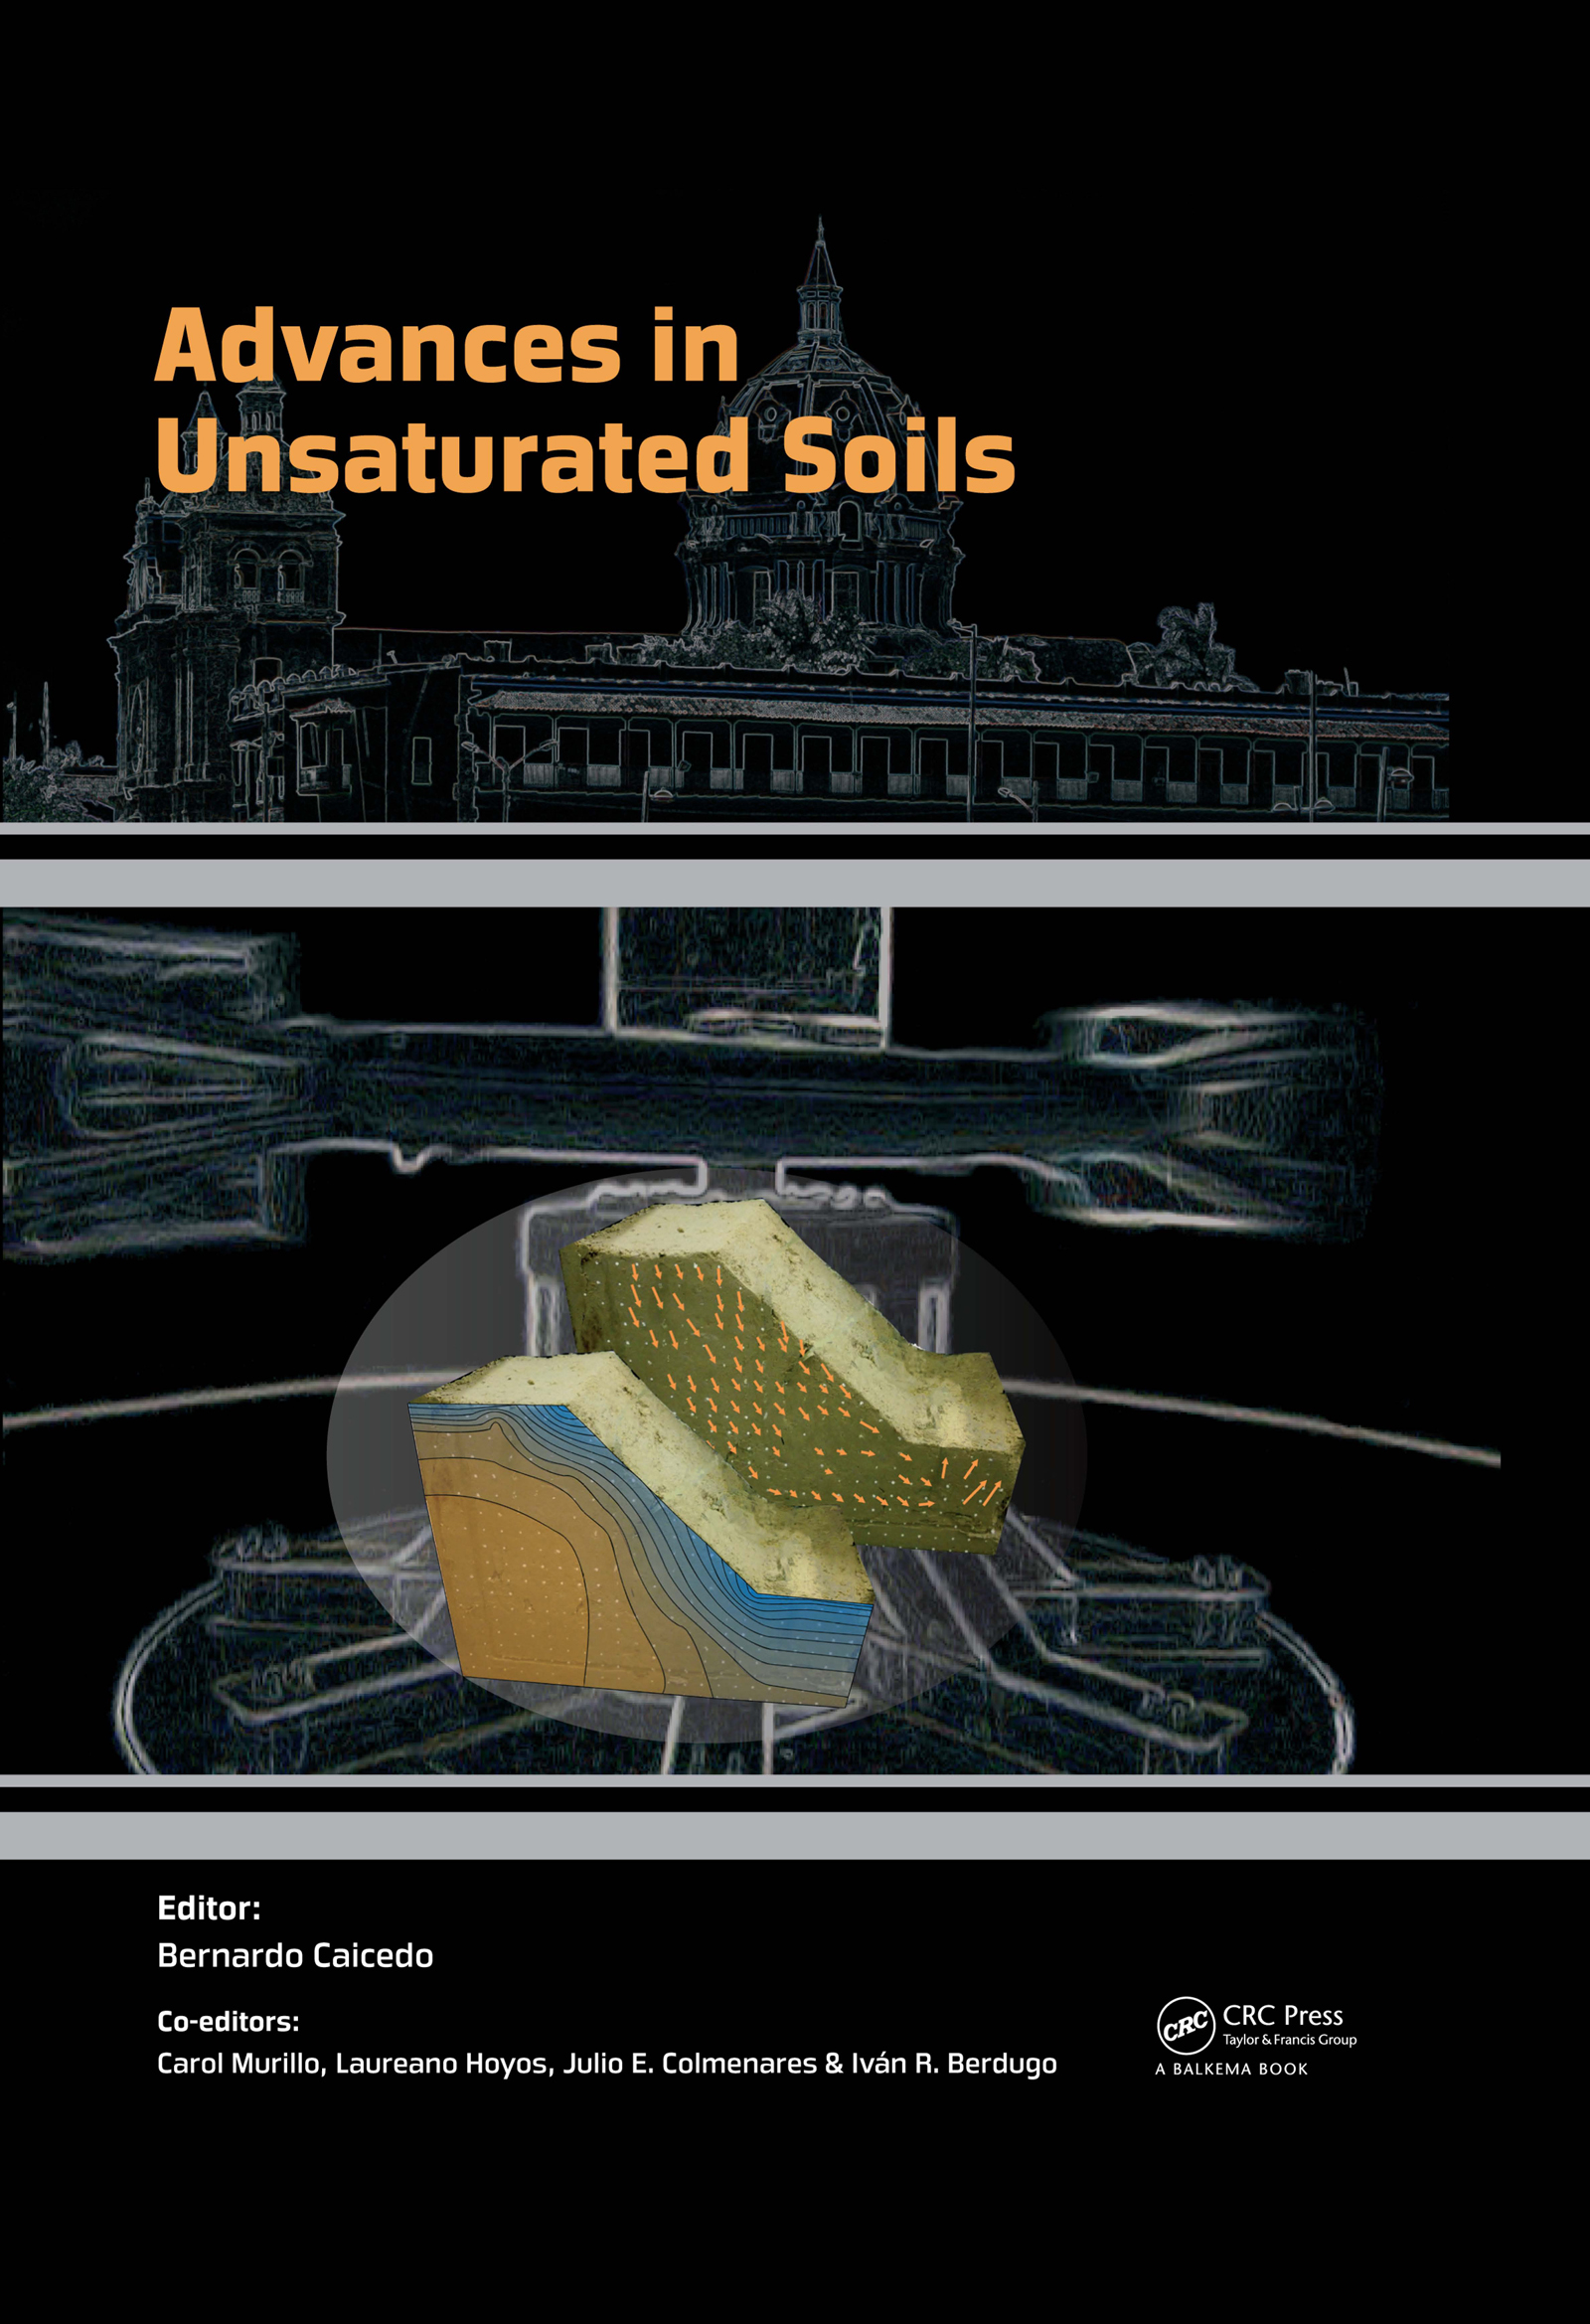 Advances in Unsaturated Soils: 1st Edition (Pack - Book and CD) book cover